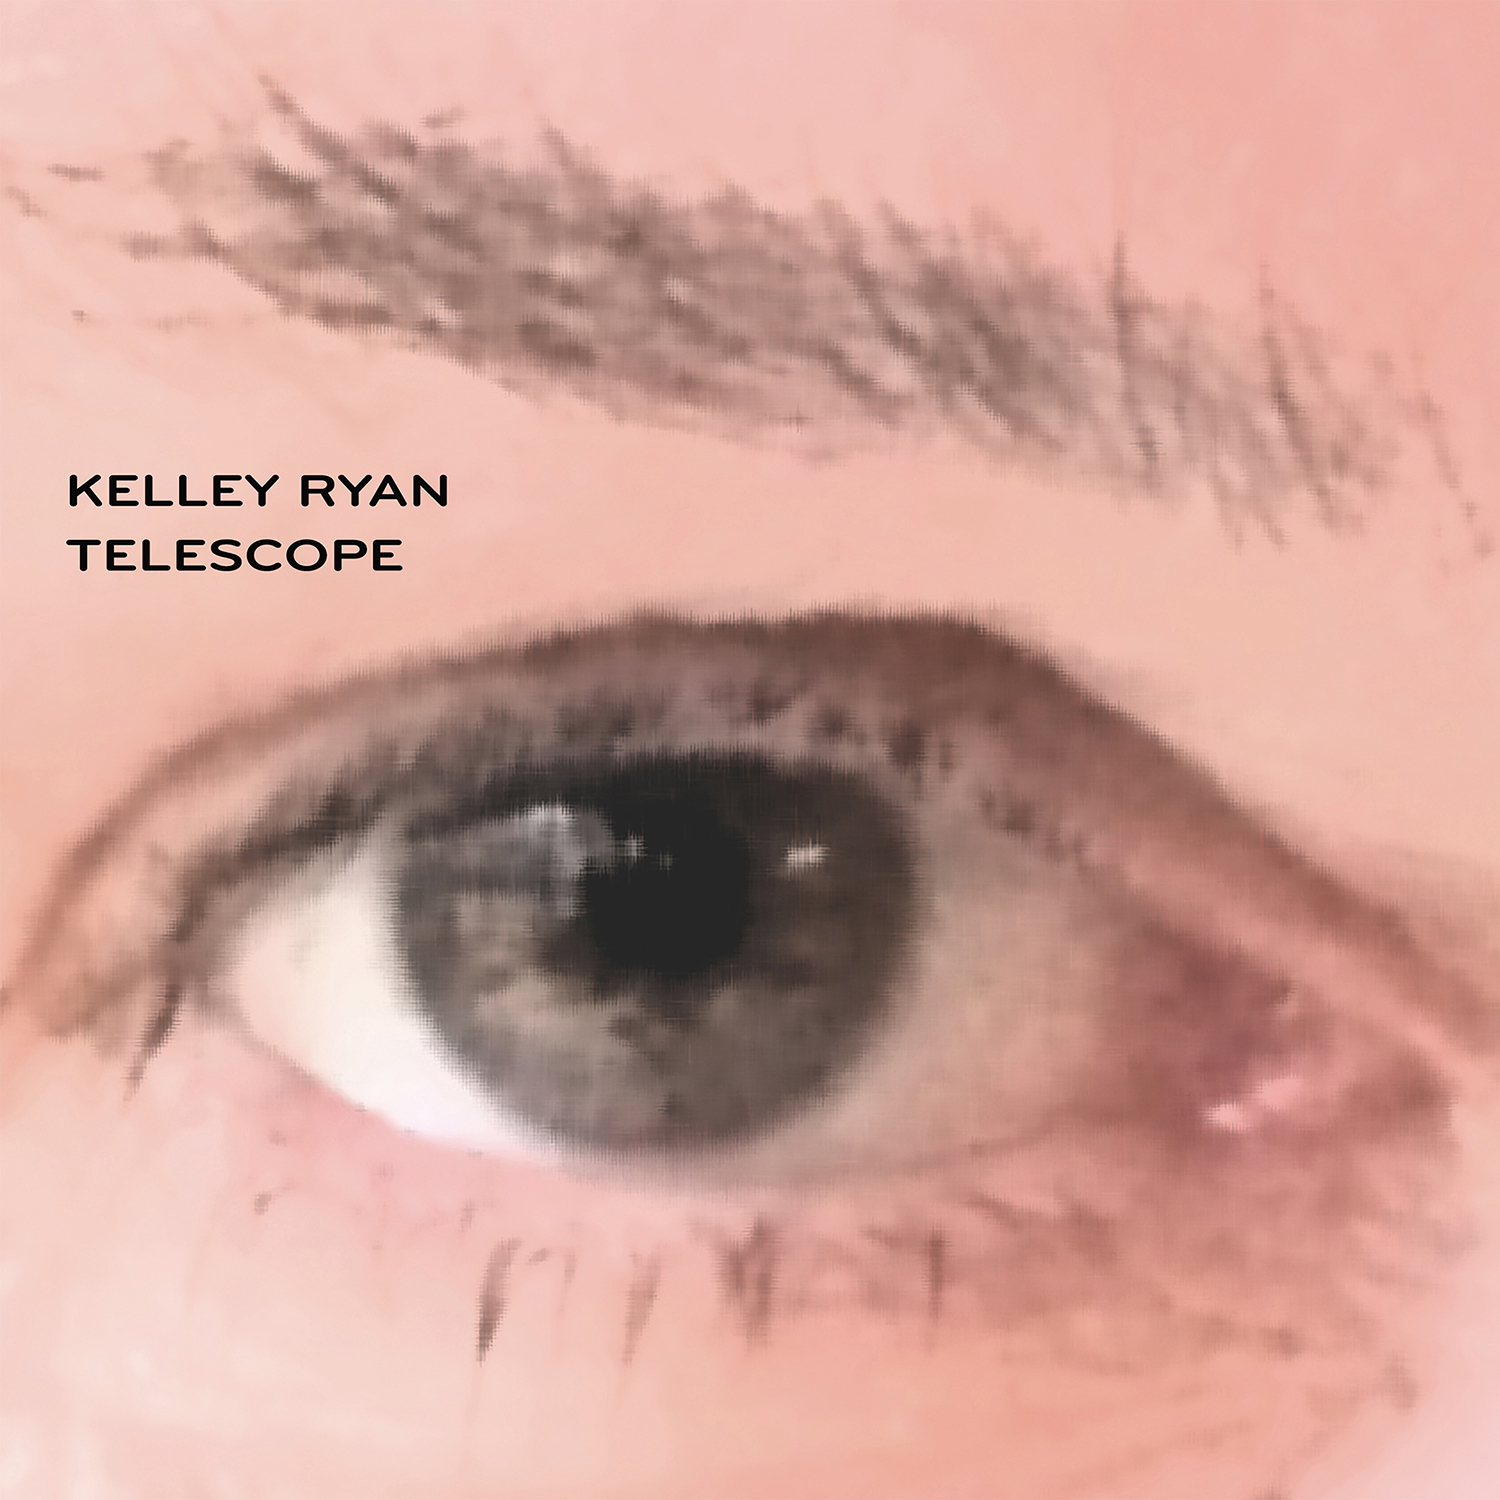 Sheer Folk Soul: Kelley Ryan's Telescope